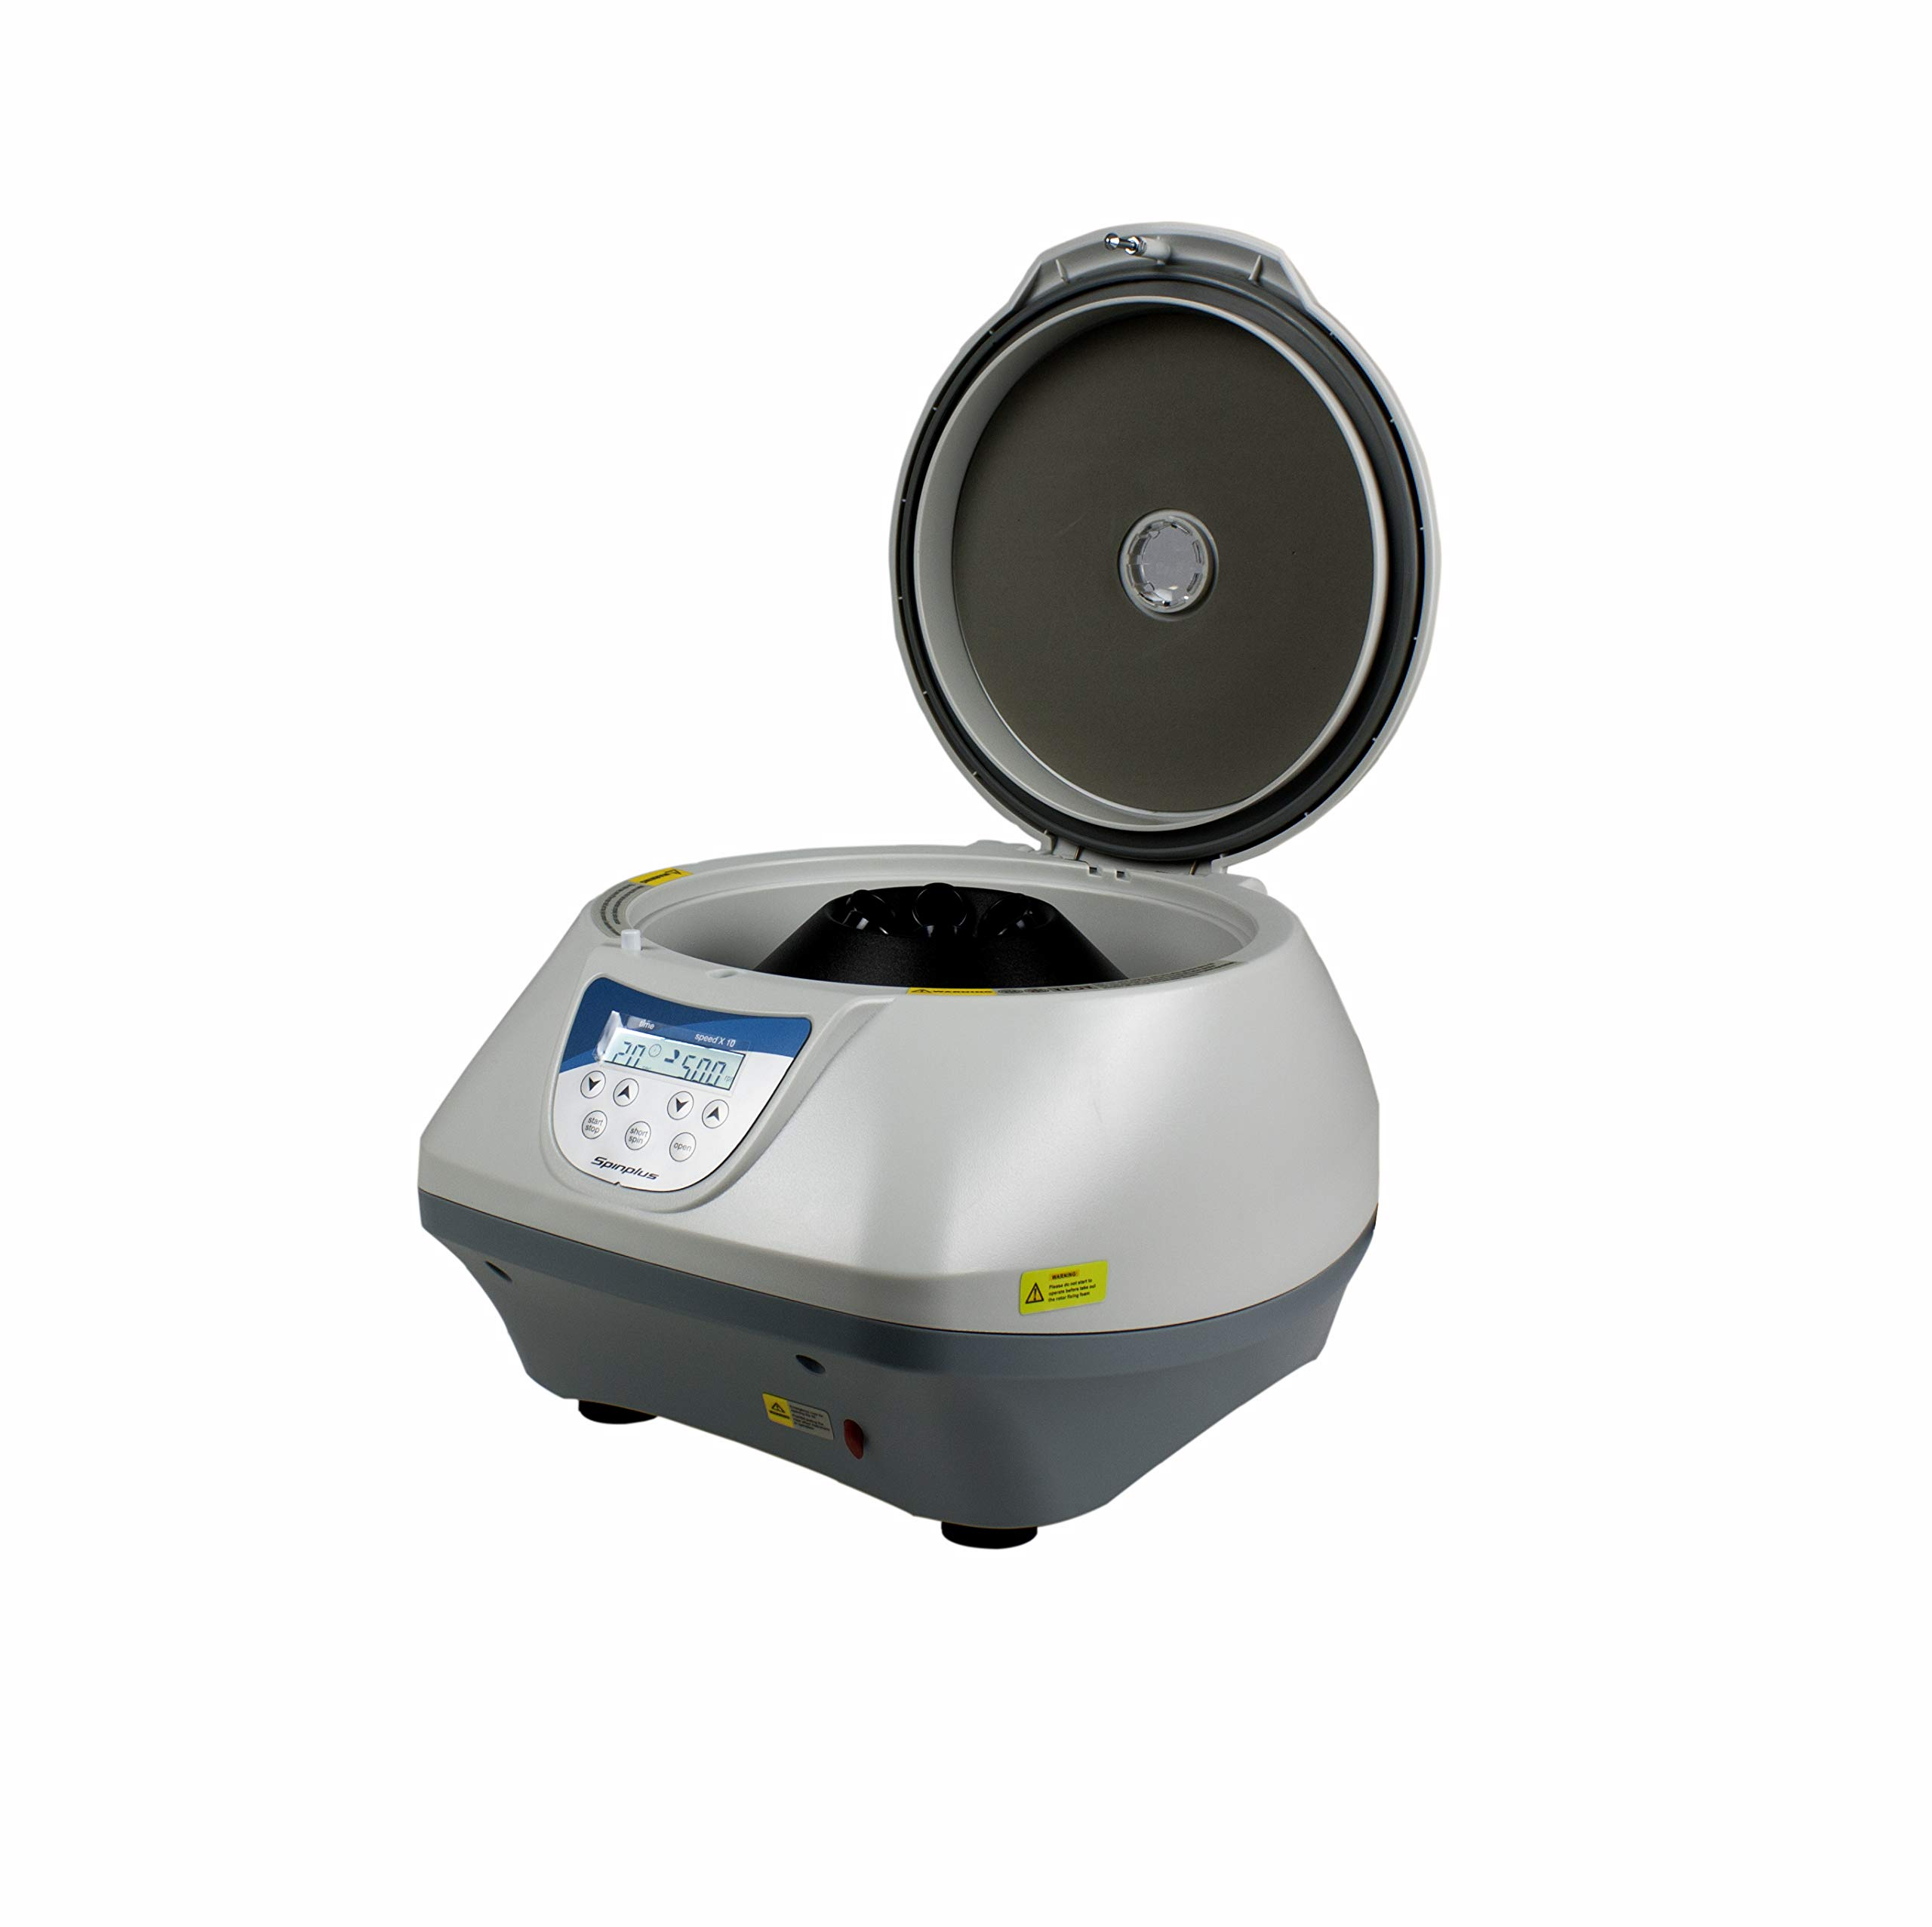 Vision Scientific VS-TC-SPINPLUS-6-1 Digital Desktop Centrifuge with 3074 RCF, 100-5000 RPM, LCD Display, Includes 15ML X 6 Rotor